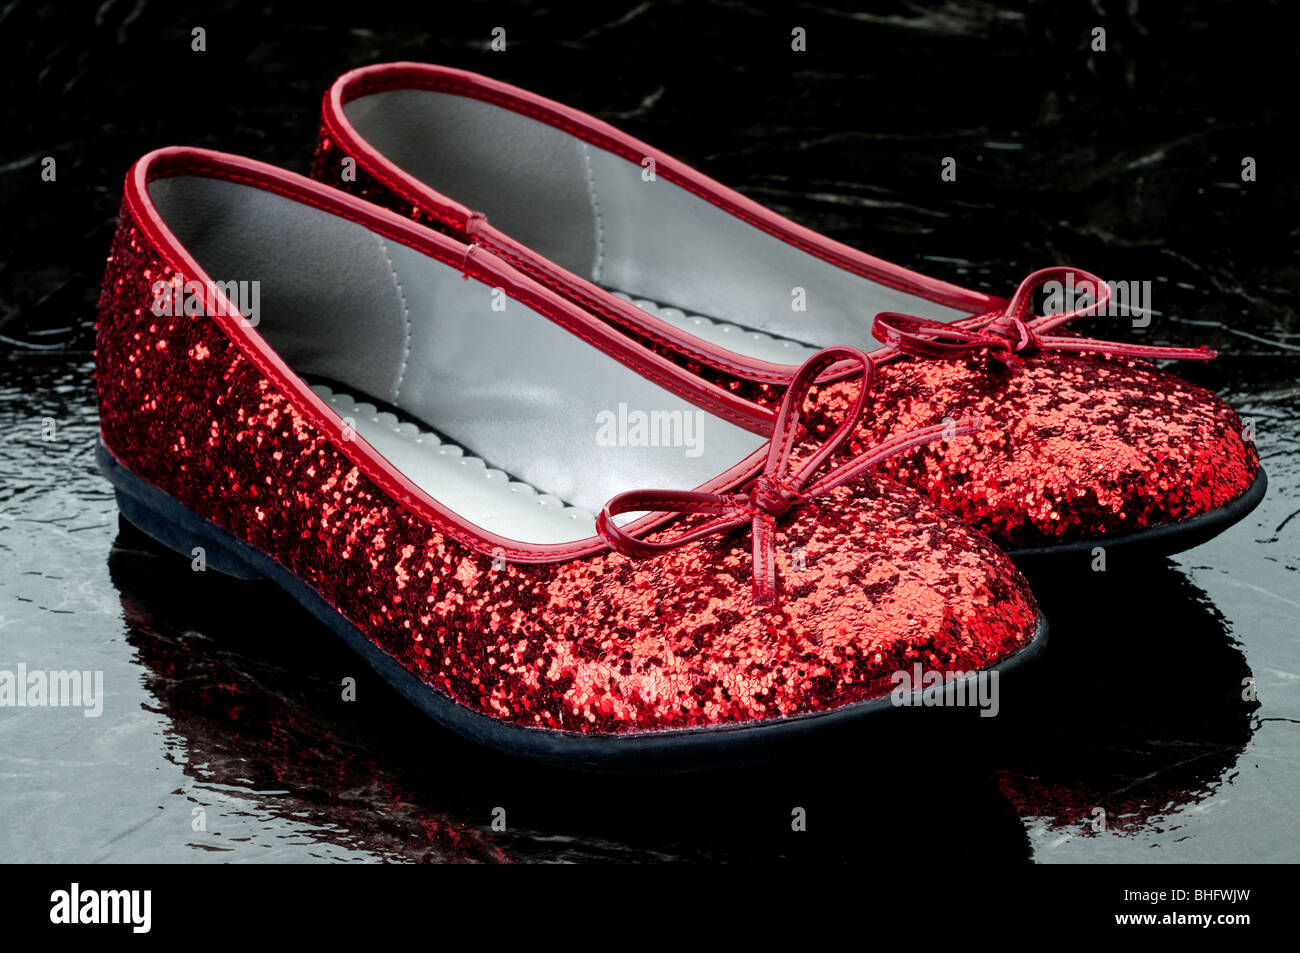 c519ac9337c Horizontal image of sequined red slippers on dark tile Stock Photo ...